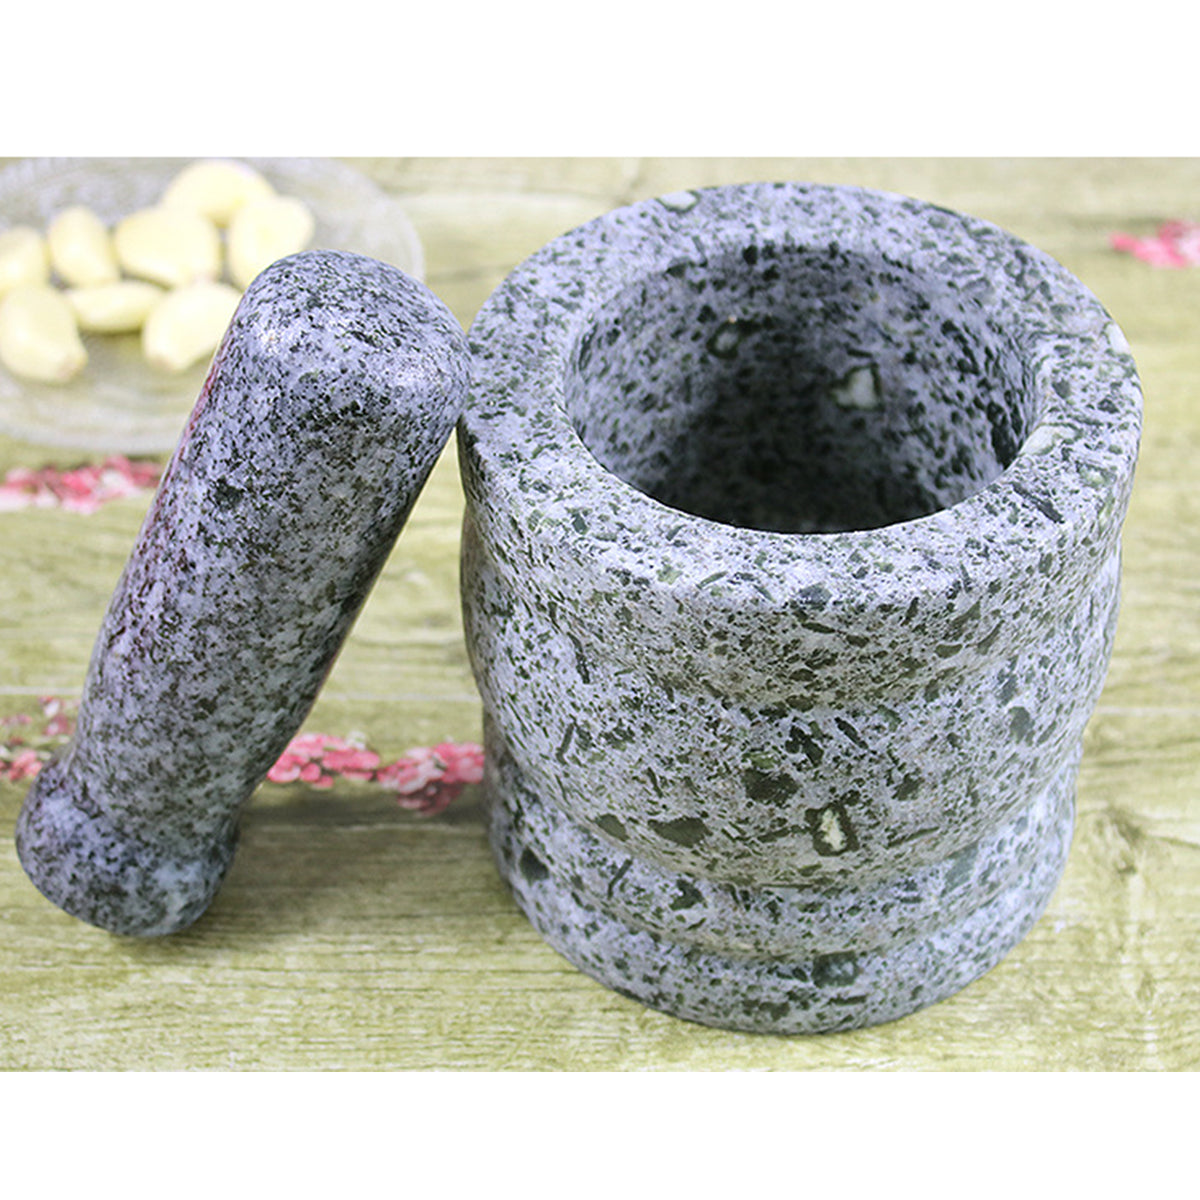 Natural Granite Pestle & Mortar Set Herbs and Spices Grinder